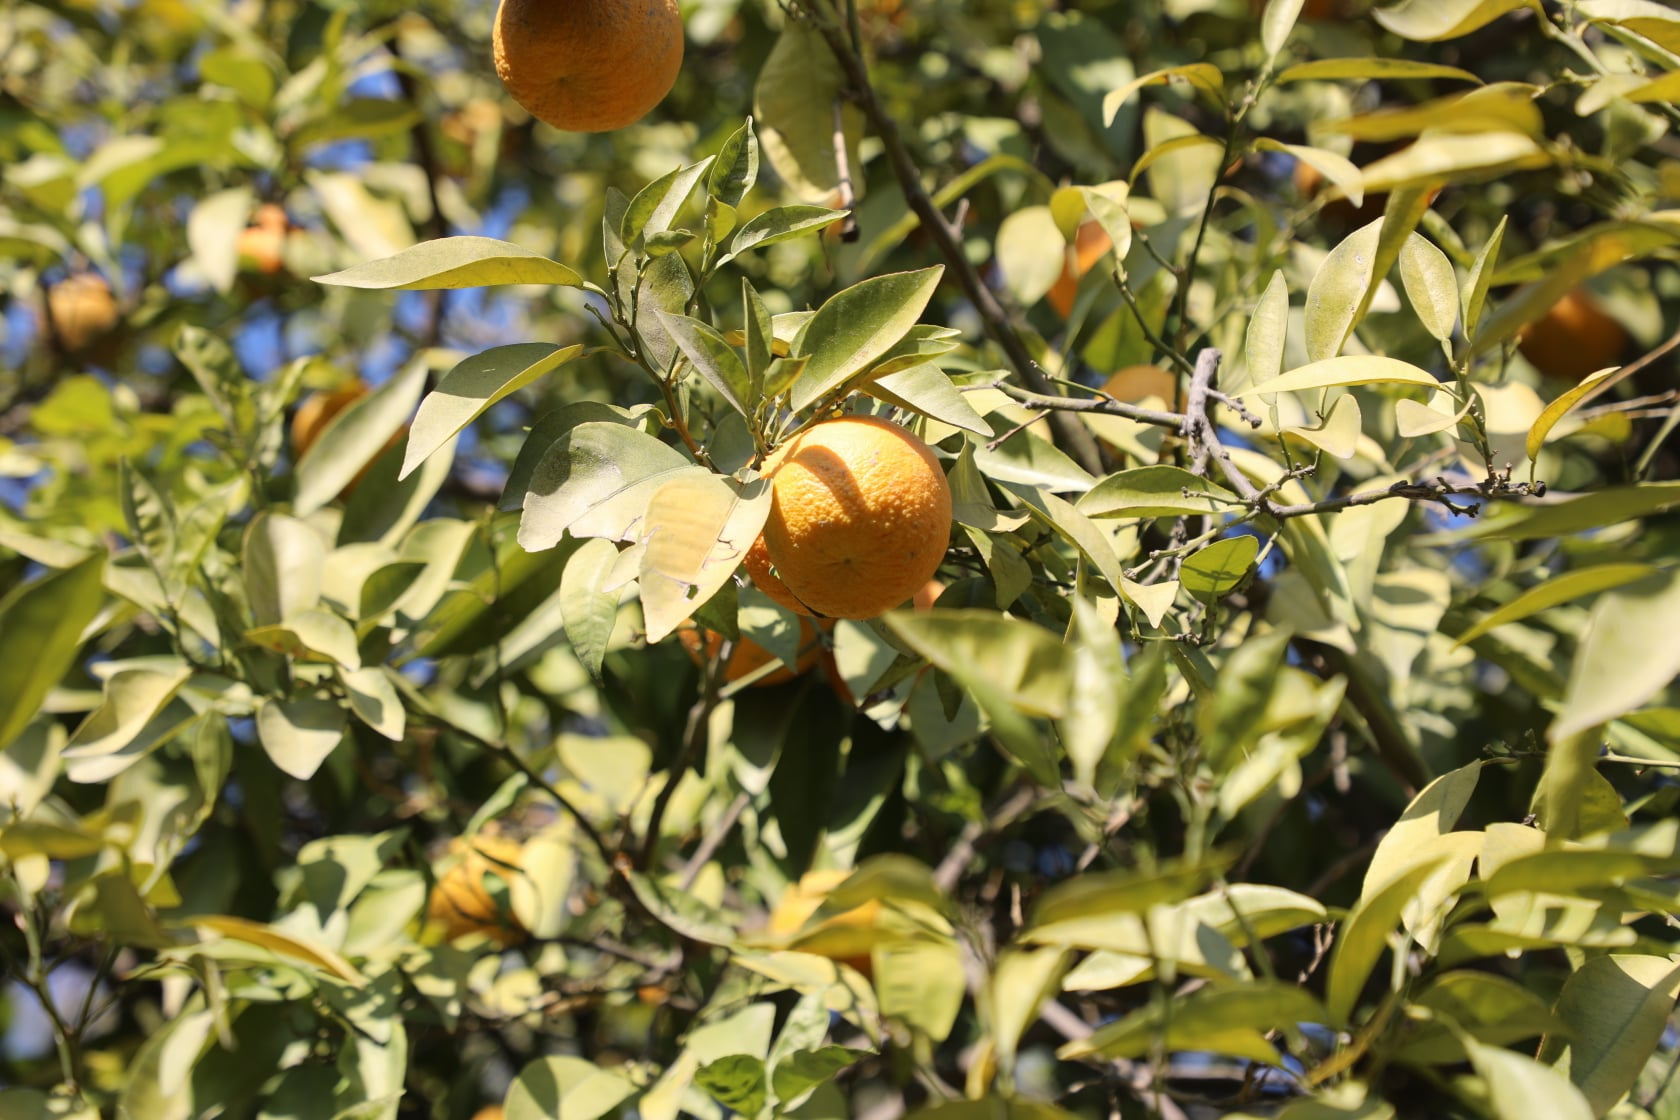 Orange of Laghman narrated by picture.